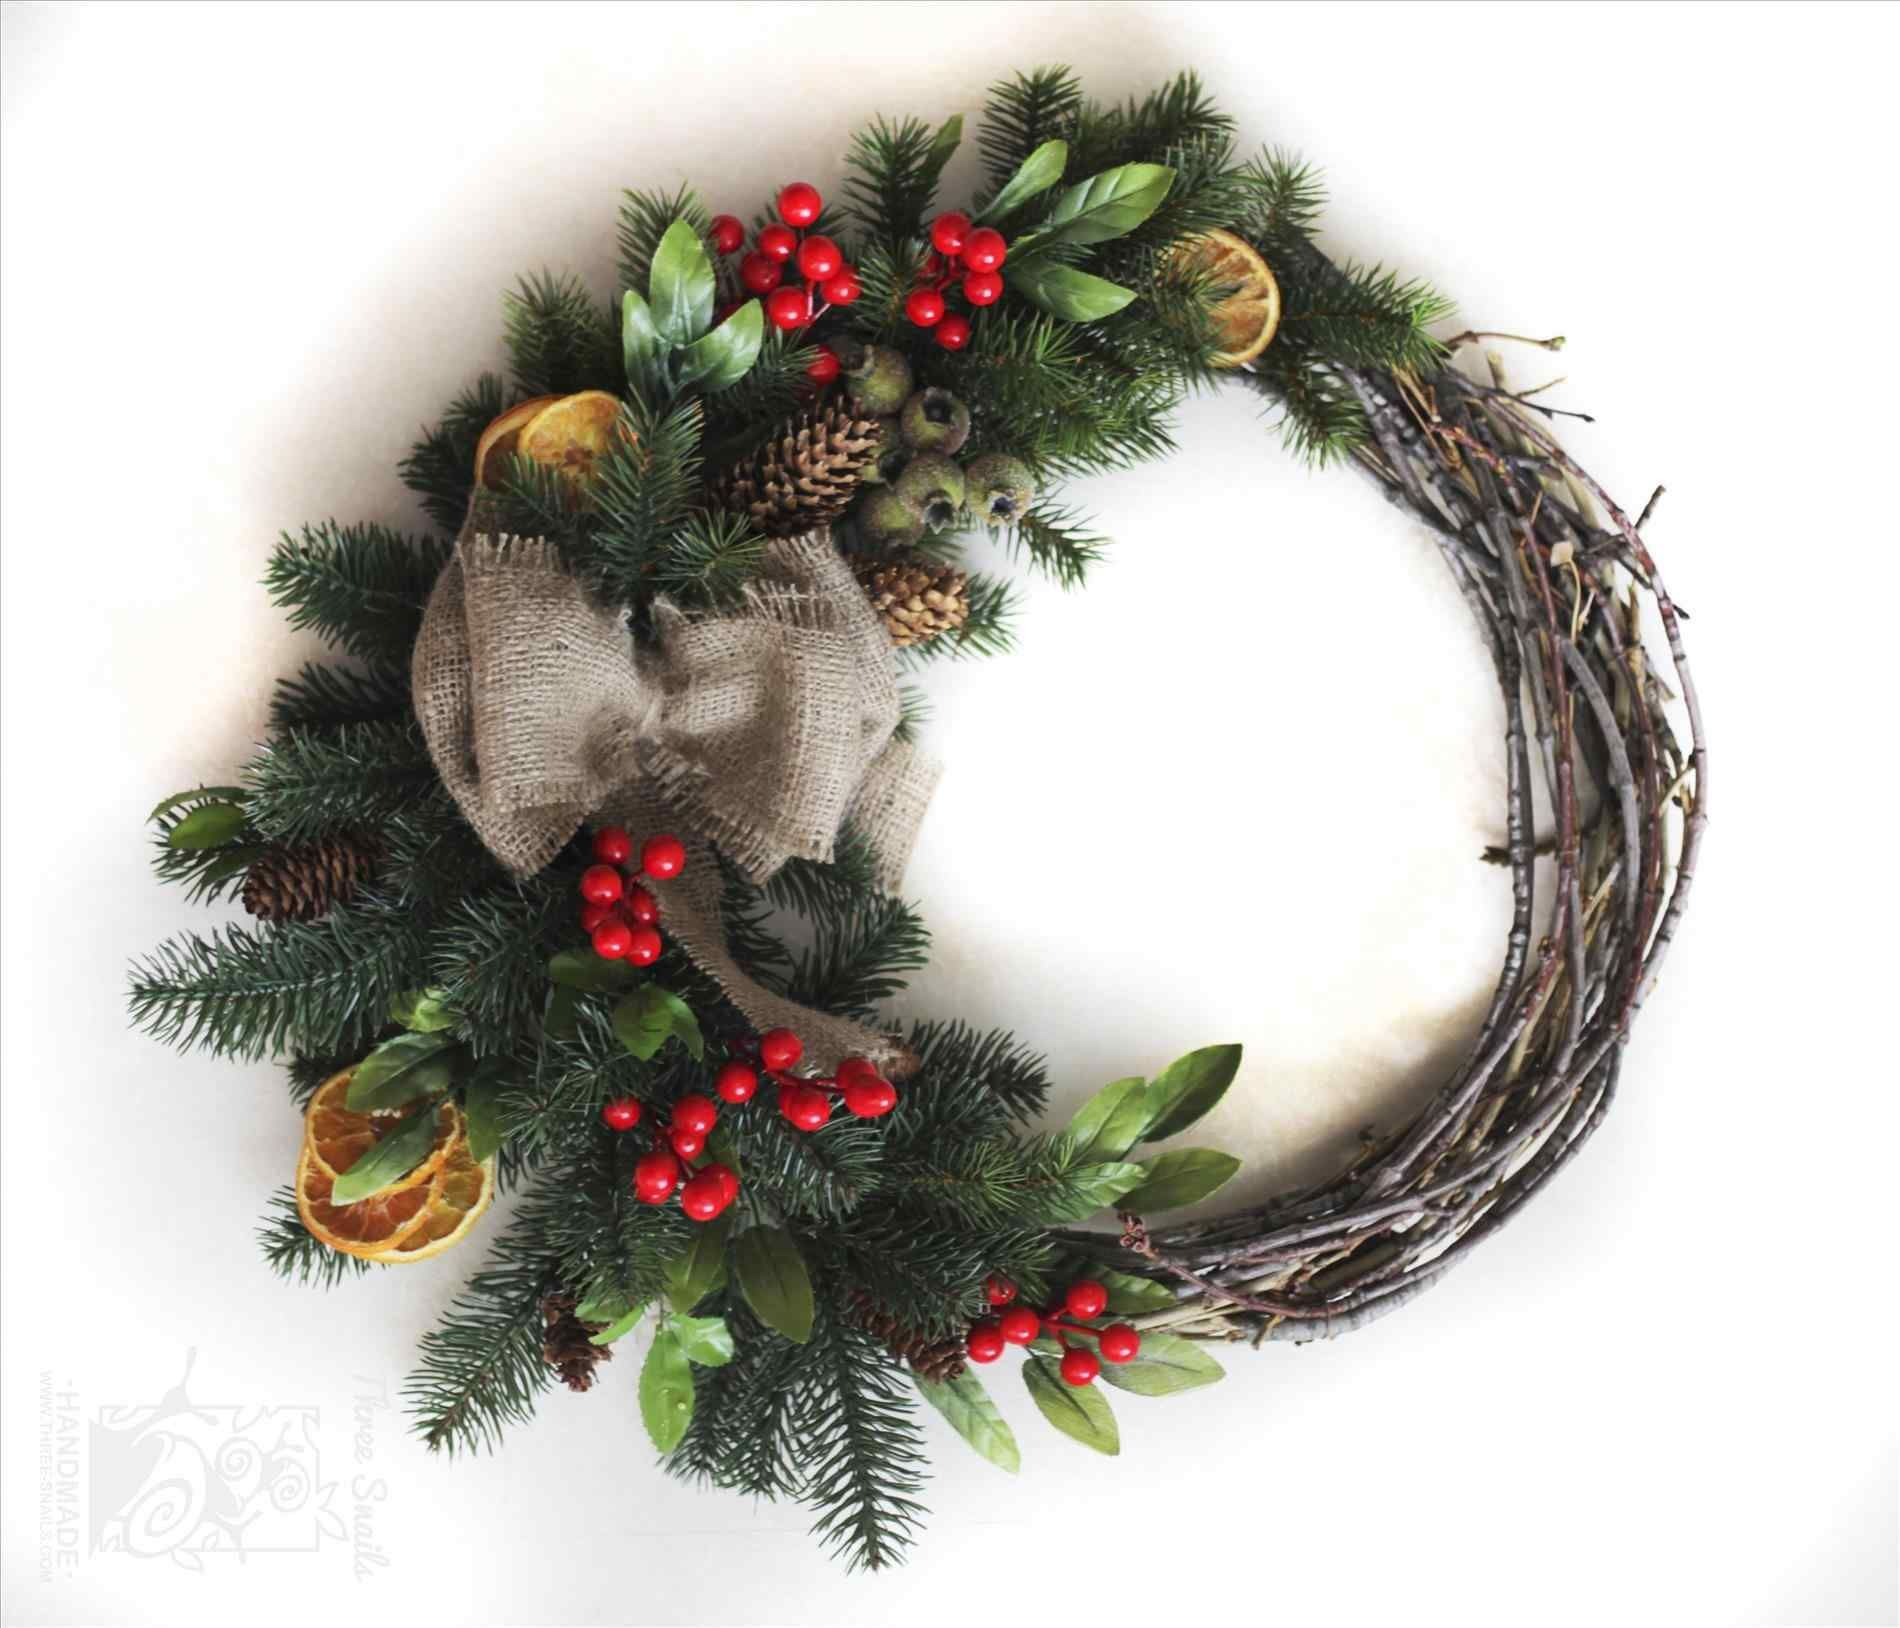 The 2018 Trends For Christmas Decorations: Christmas Decor Trends For 2018